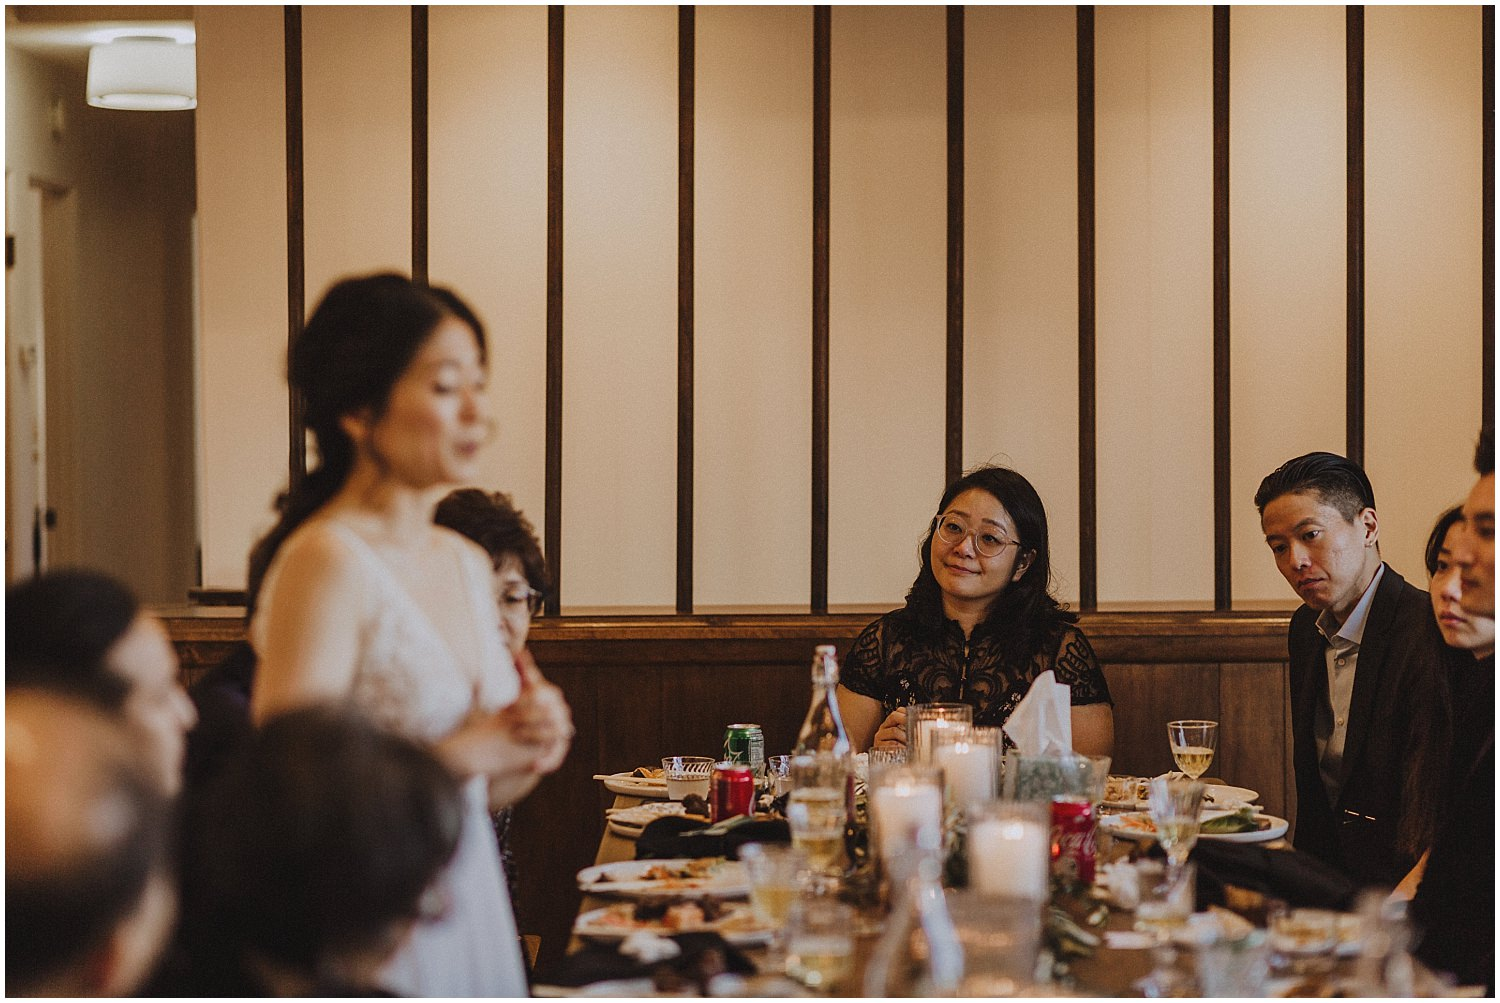 people looking on as a bride stands up and gives a speech Chicago wedding photographer kyle szeto